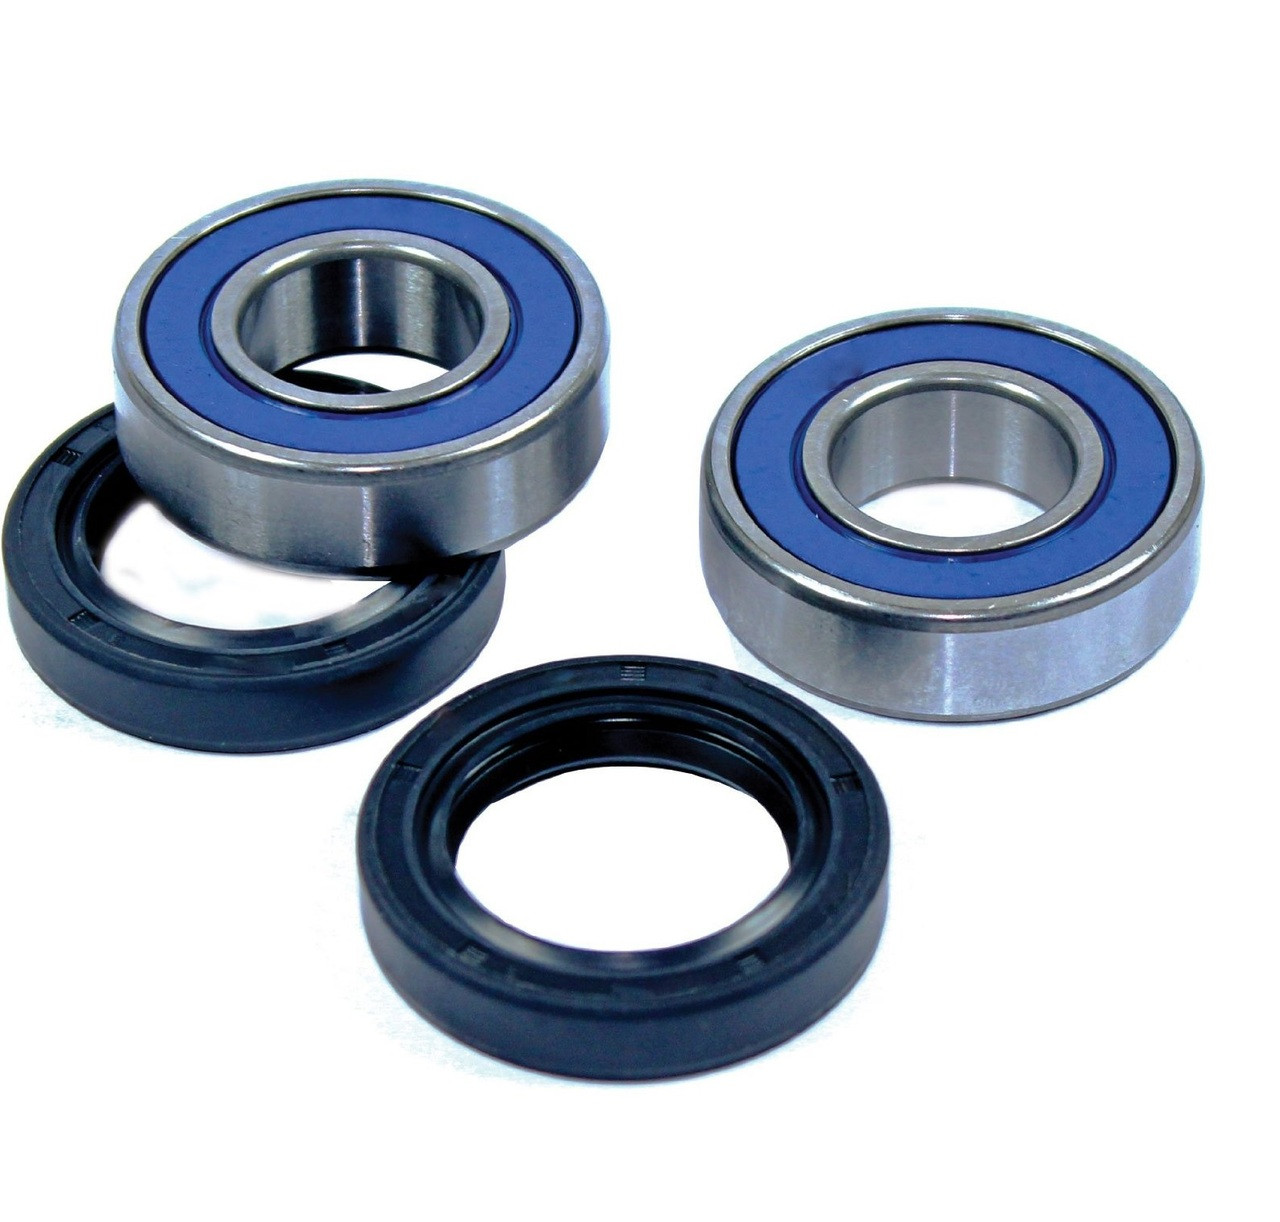 Honda ATC200E Big Red ATV Rear Wheel Bearing Kit 1982-1983 Image